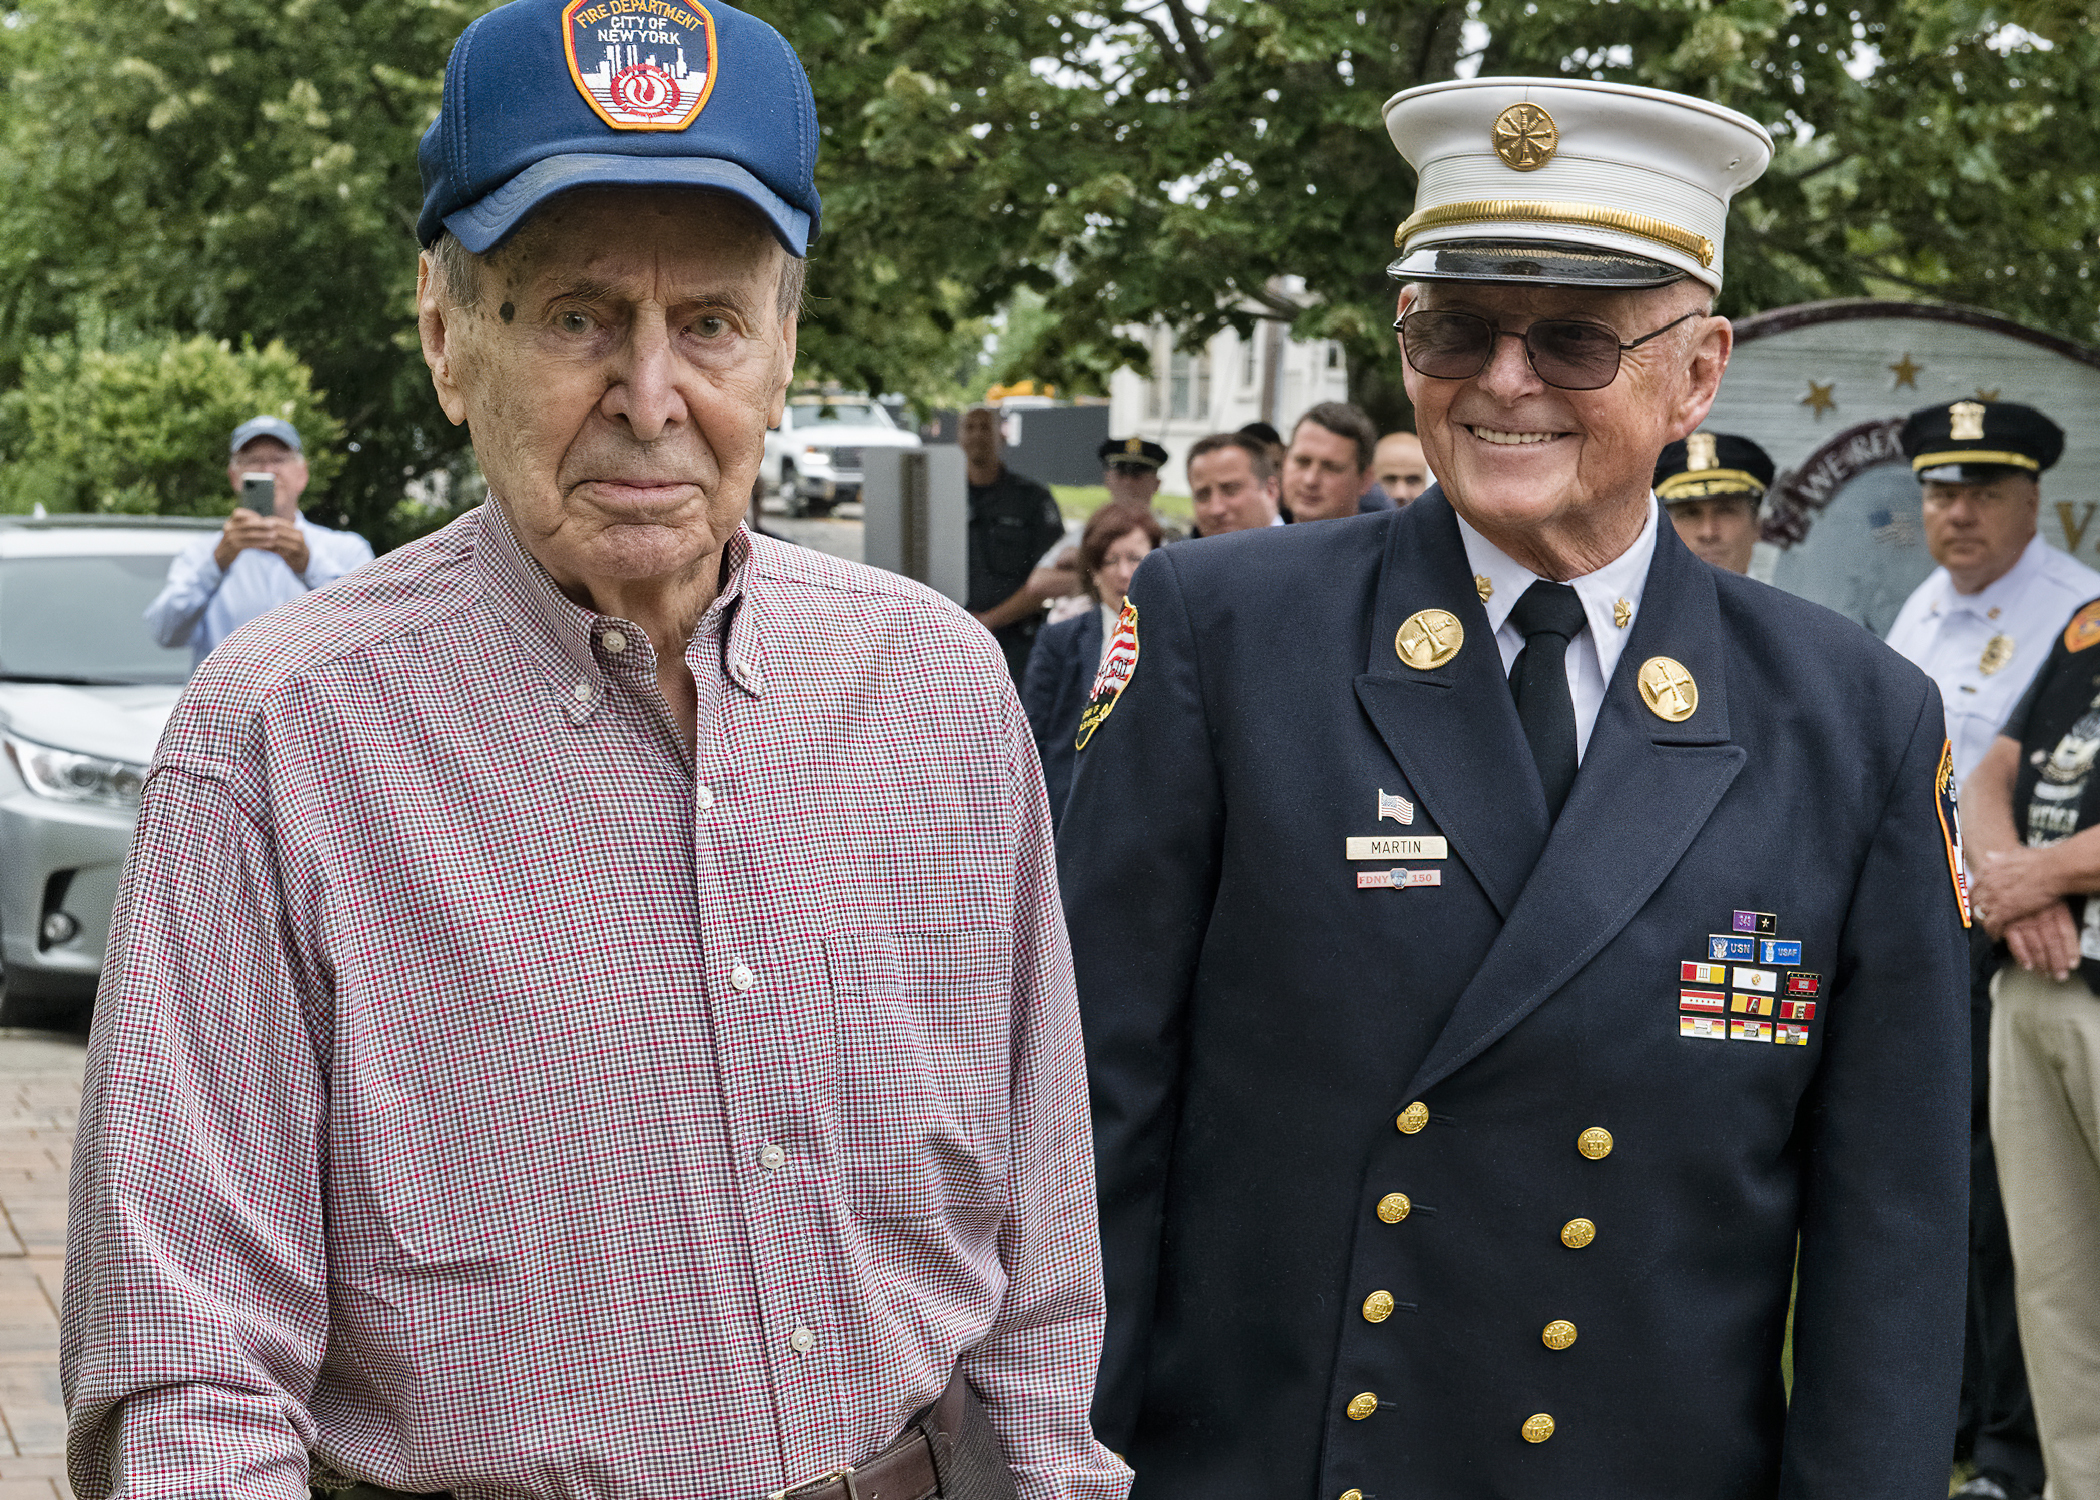 : VFW  Post 5350 in Westhampton Beach hosted a New York Fire Department ceremony honoring 99-year-old World War II veteran Chester Moscicki, of Center Moriches, on July 13. Mr. Moscicki, shown left arriving at the ceremony with retired NYFD Chief Thomas Martin, served as a tail gunner on a B-26, flying more than 35 missions over Japan. He was credited with shooting down a Japanese Zero and survived a crash landing on the island of Tinian. After the war he joined the NYFD where he served for more than 30 years, retiring with the rank of captain.